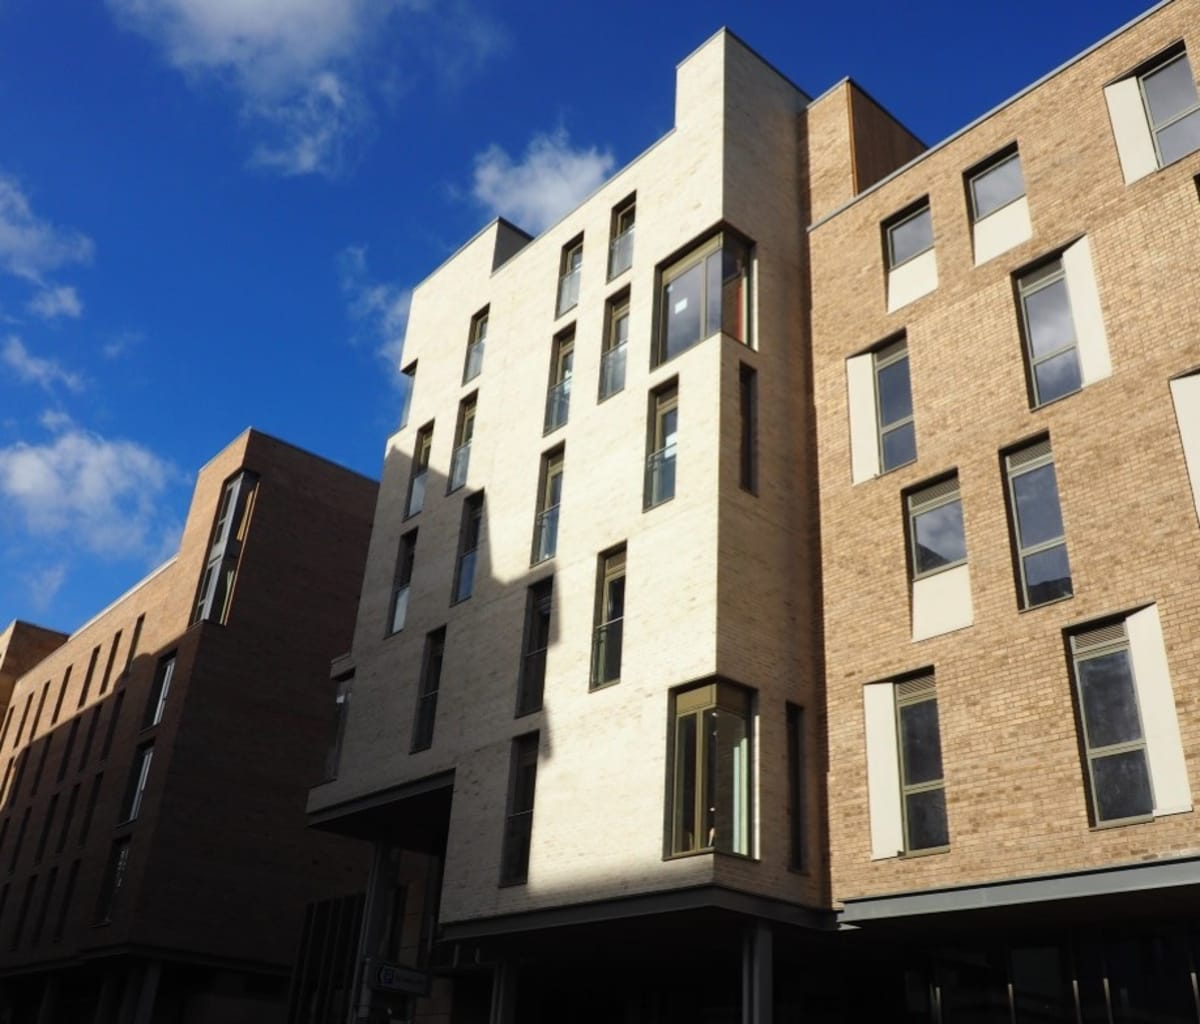 View of accommodation buildings in Edinburgh